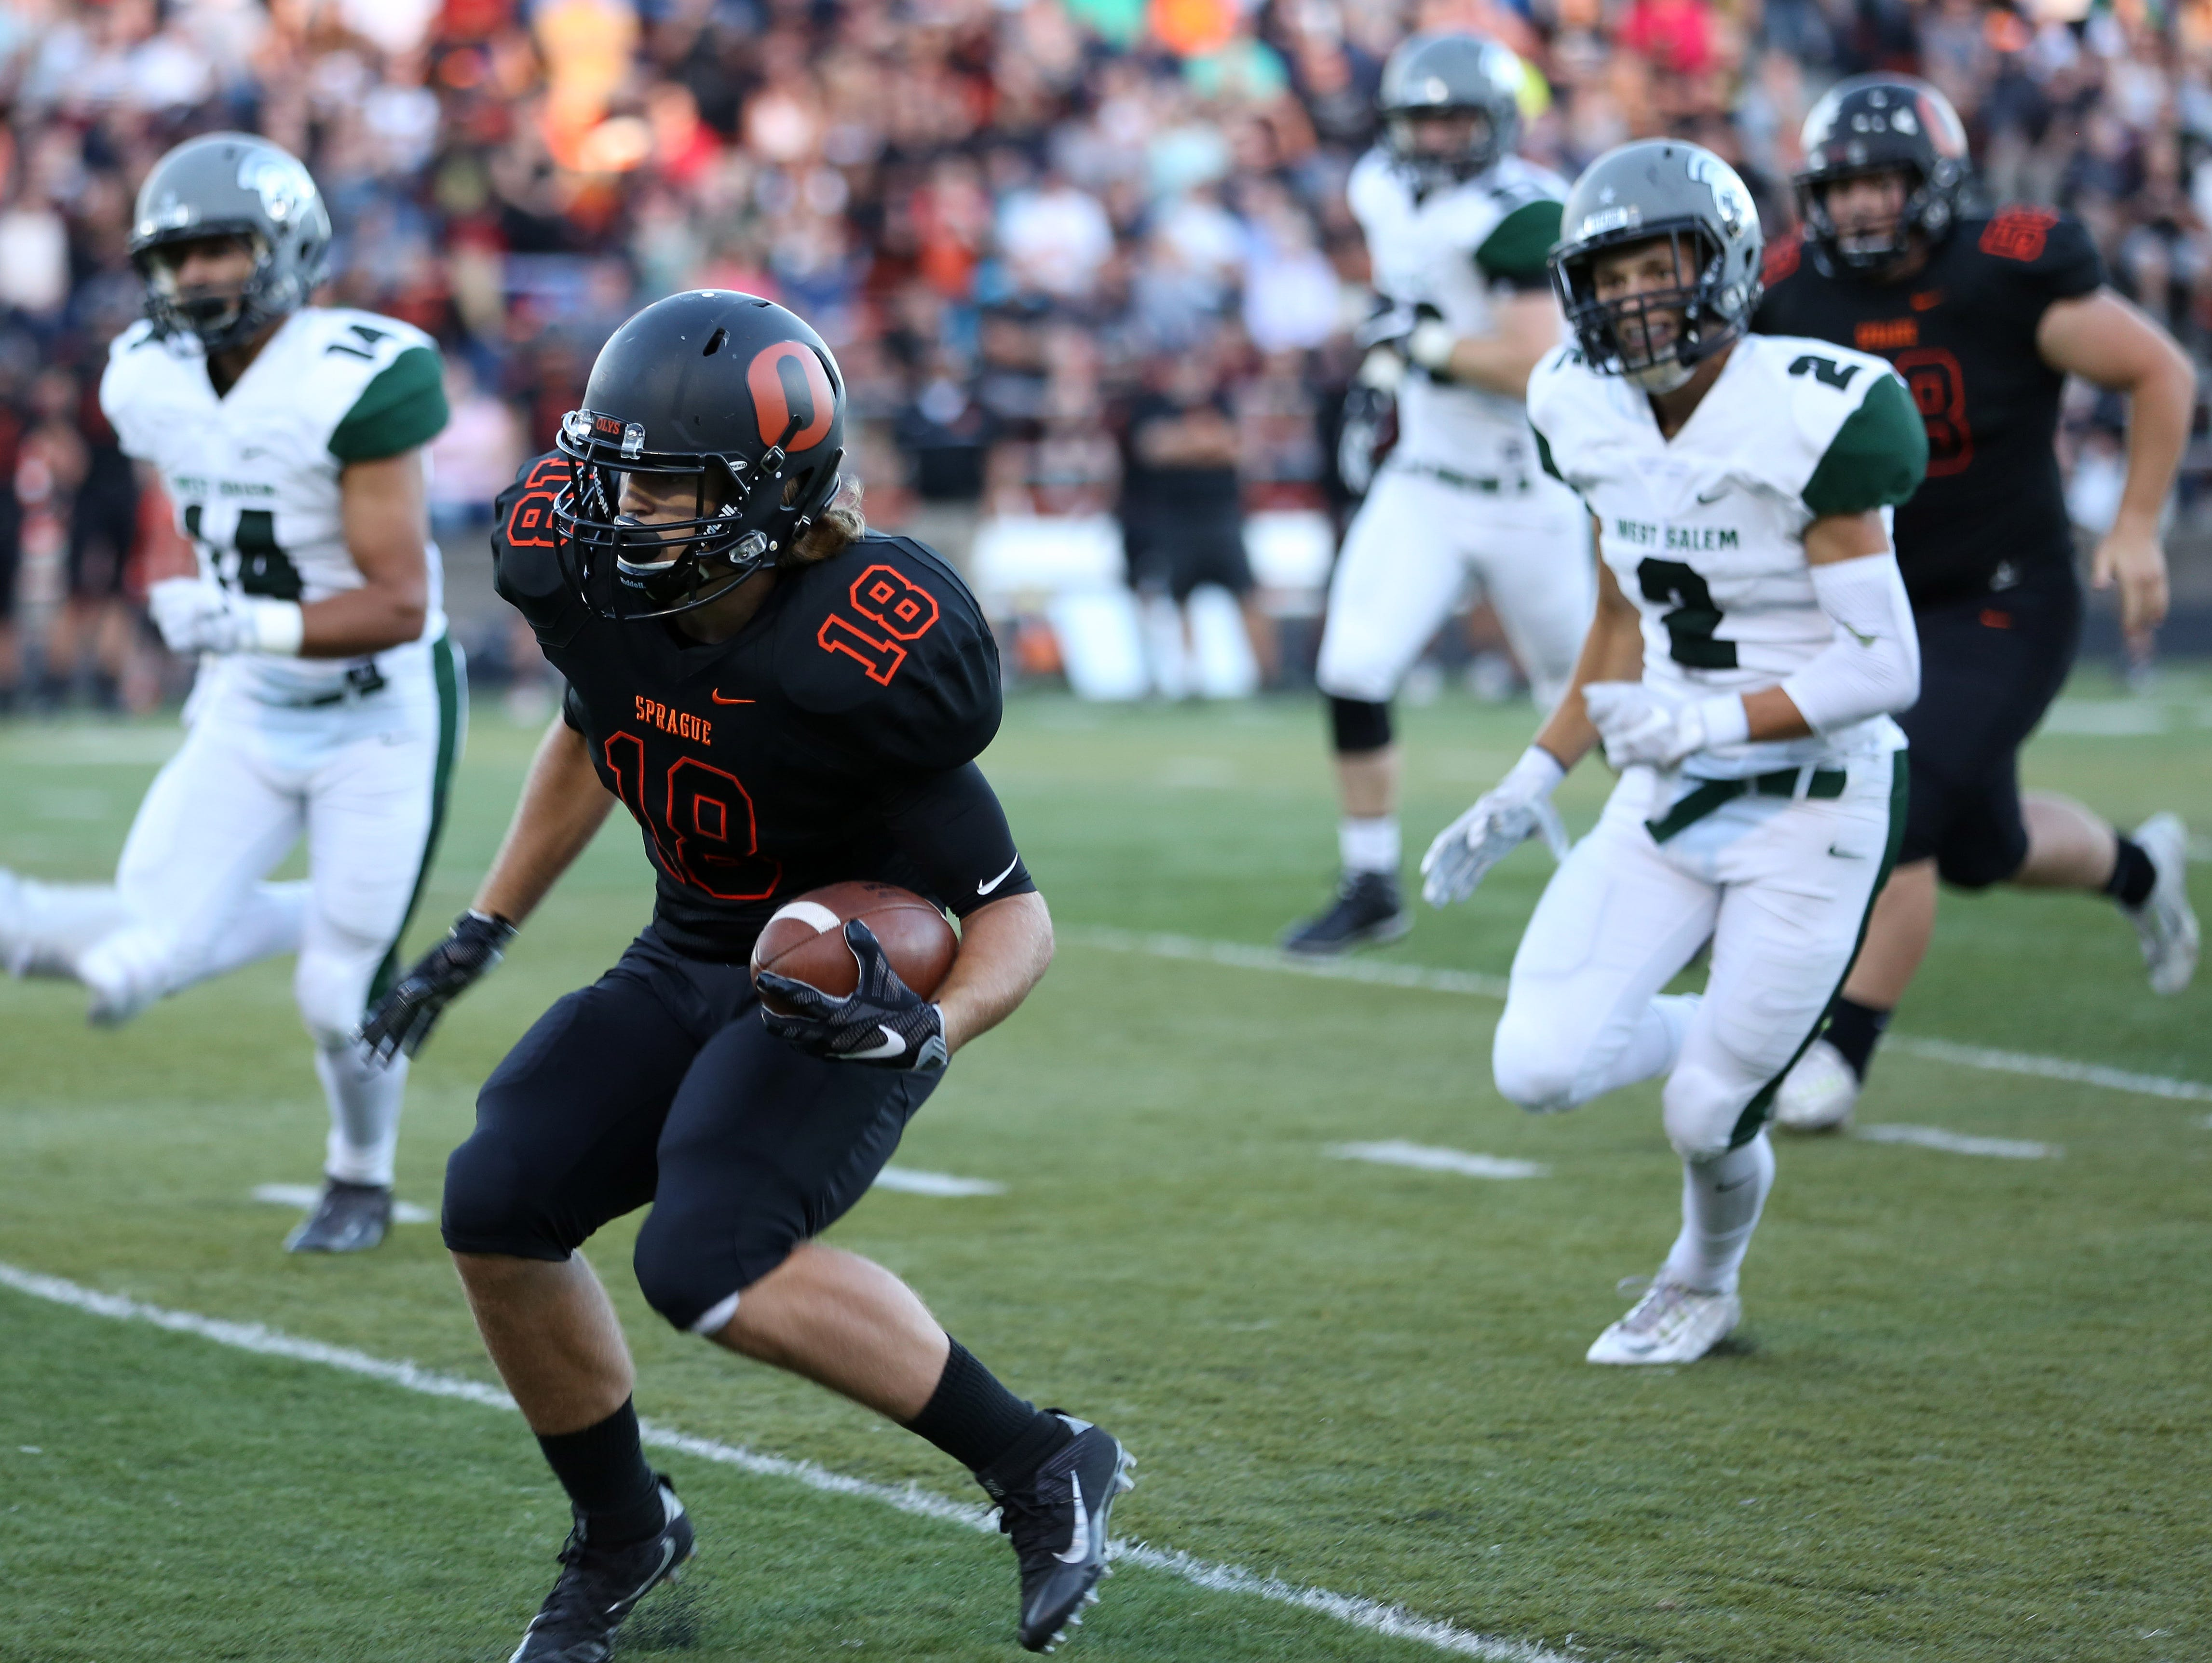 Sprague's Dane McKinney runs the ball as the Olympians fall to West Salem 36-29 in a Greater Valley Conference game on Friday, Sept. 9, 2016, at Sprague High School.